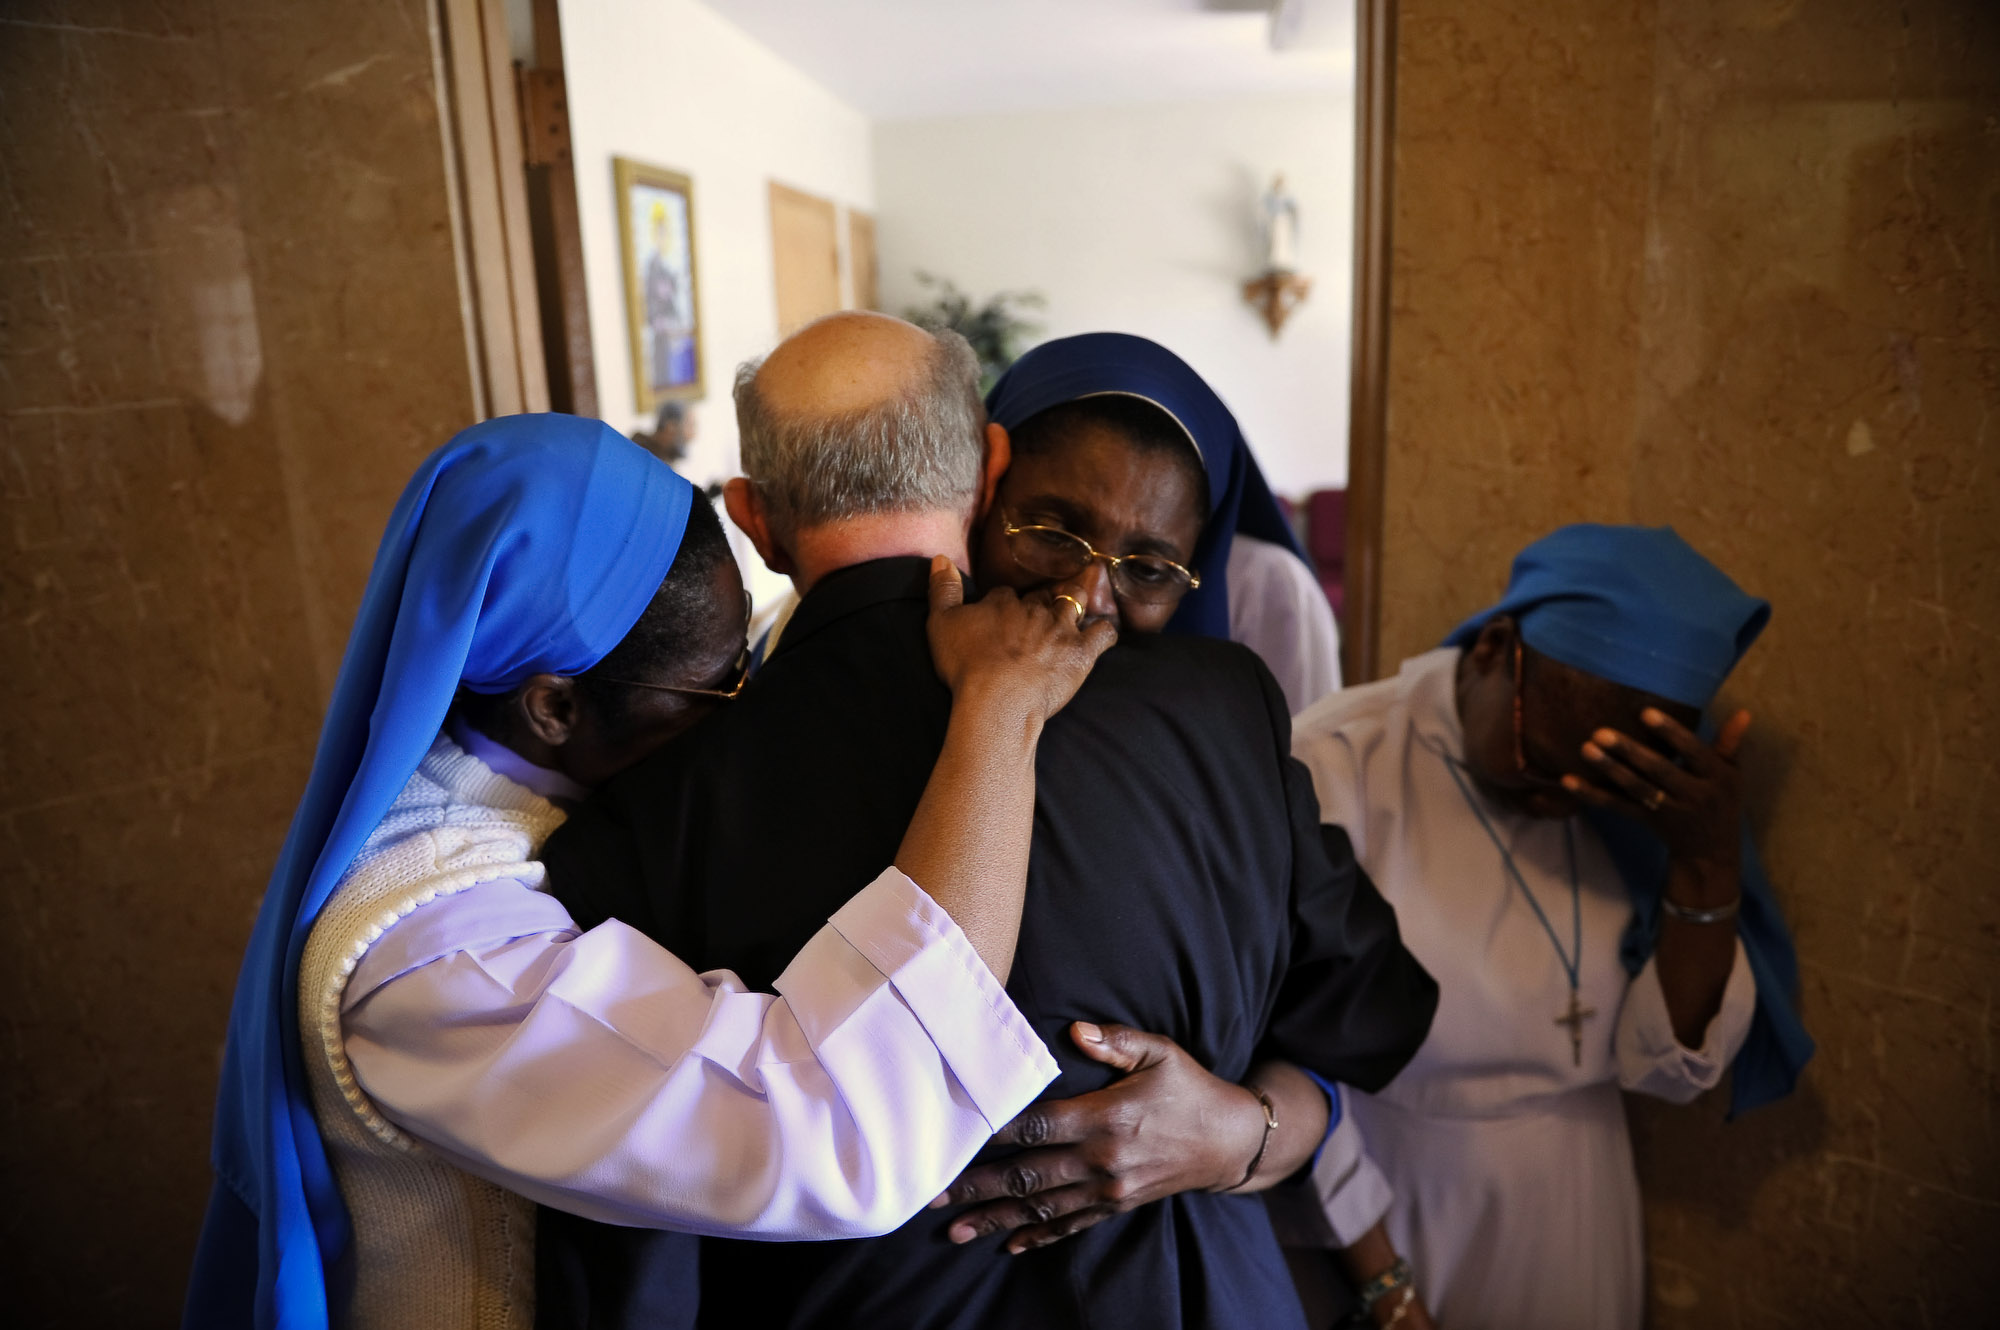 The nuns,  Sr.Mary Henrietta Iroghumg, Sr. Mary Victur Egbokg, Sr. Mary Victoria Loeka and Sr. Mary Obi Oraka say their goodbyes and embrace Msgr. Granato near the front door of the Rectory as he exits Tueday after Mass.  The Last mass celebrated by Msgr. Granato at St. Lucy's Church, Newark is held Tuesday morning. The monsignor, who is 80 and spent 54 years at the church, he must move out upon the orders of the diocese of Newark.   Photographed for The Star-Ledger